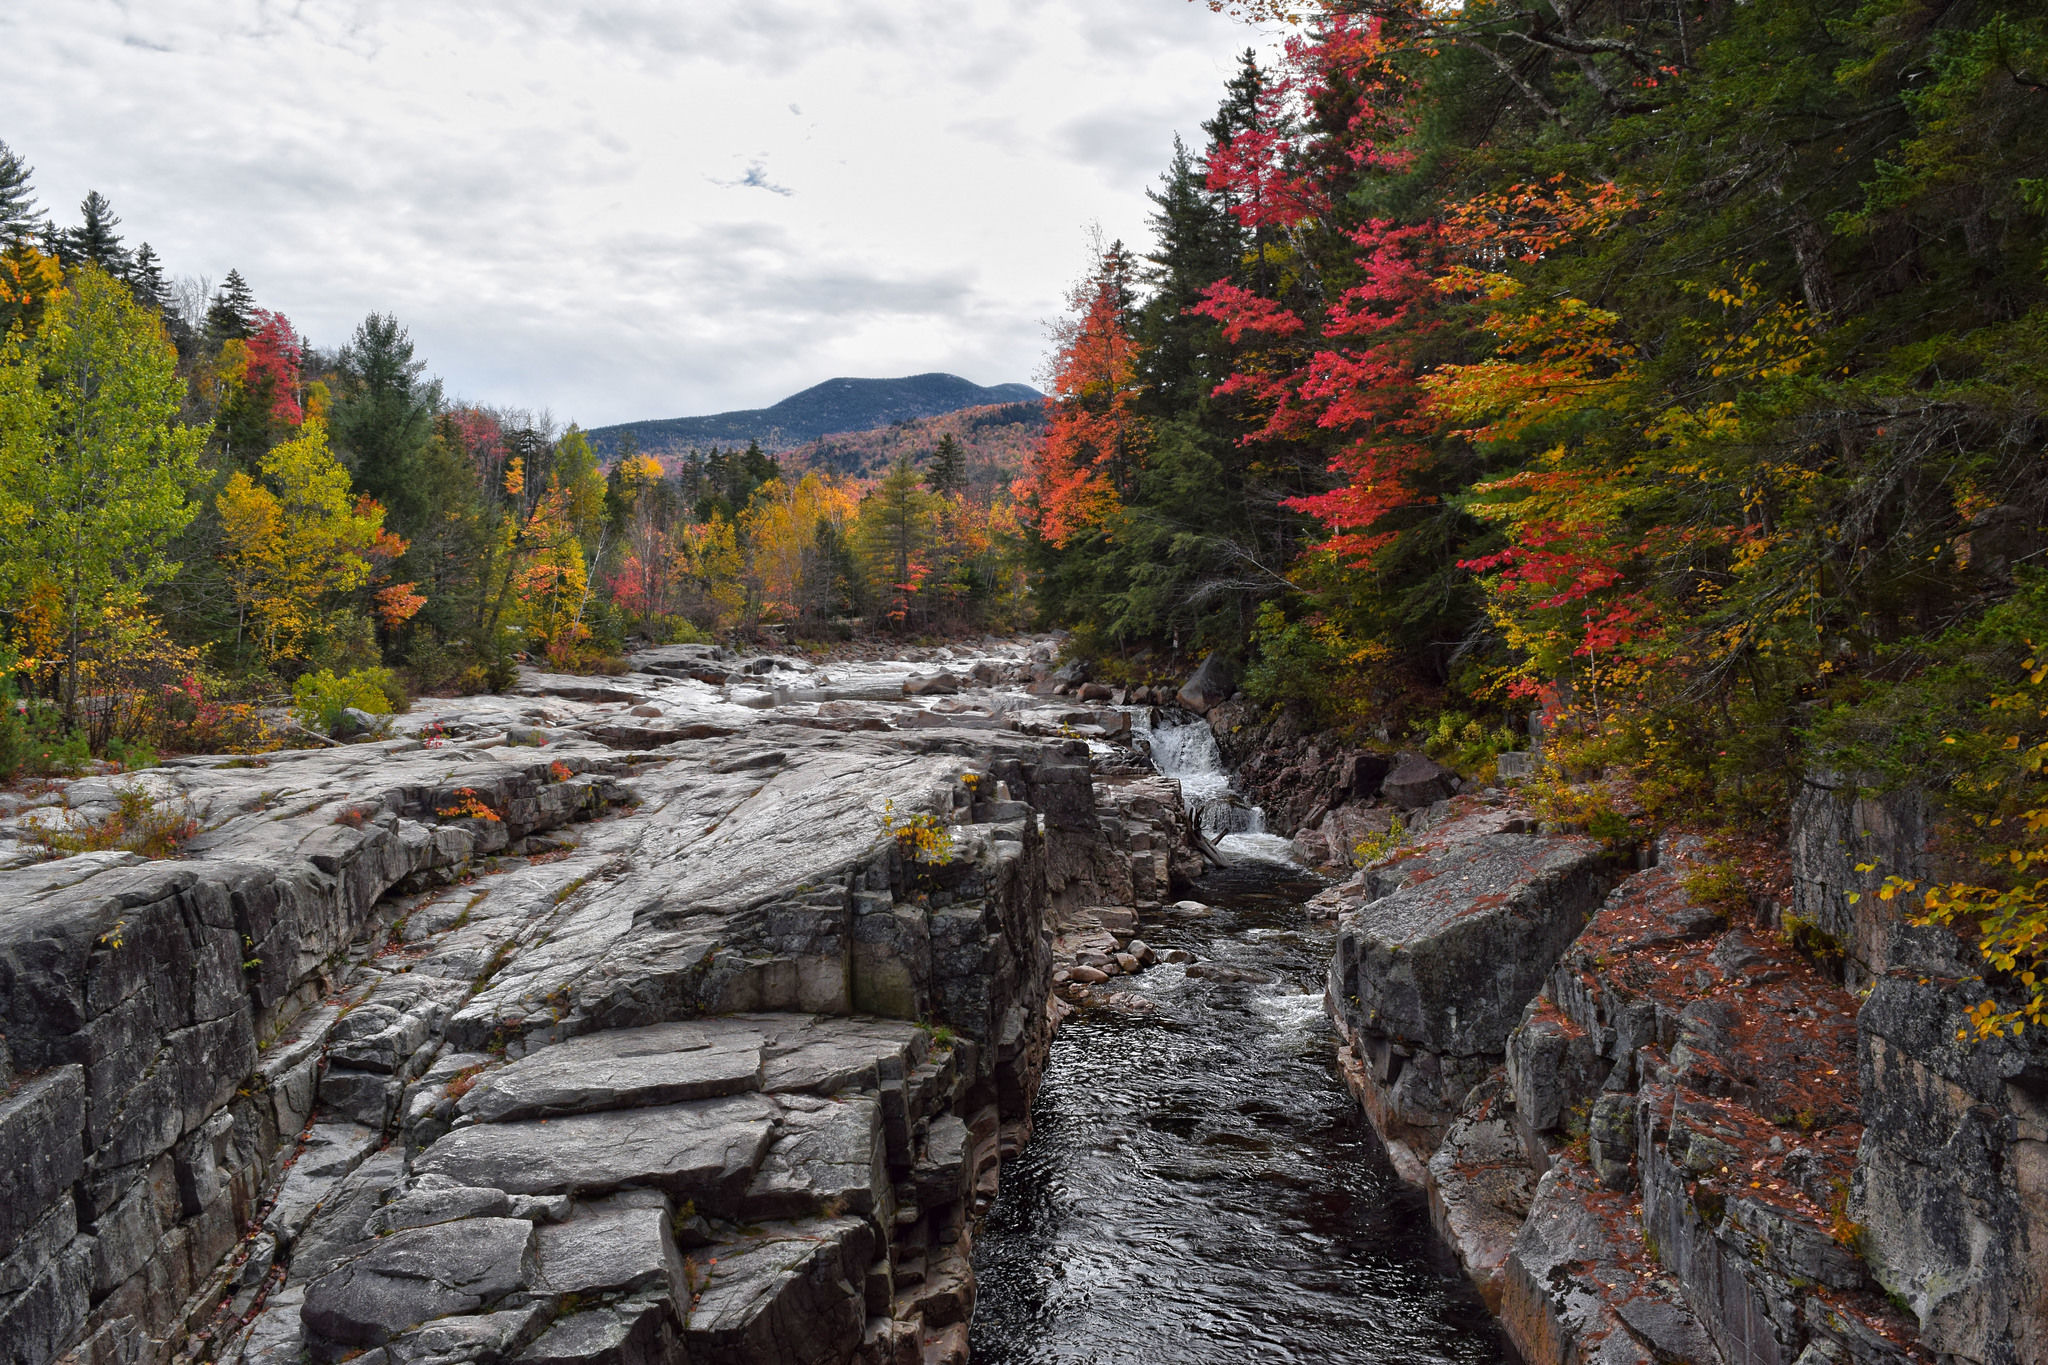 Photos of Rocky Gorge Scenic Area Trails - New Hampshire | AllTrails